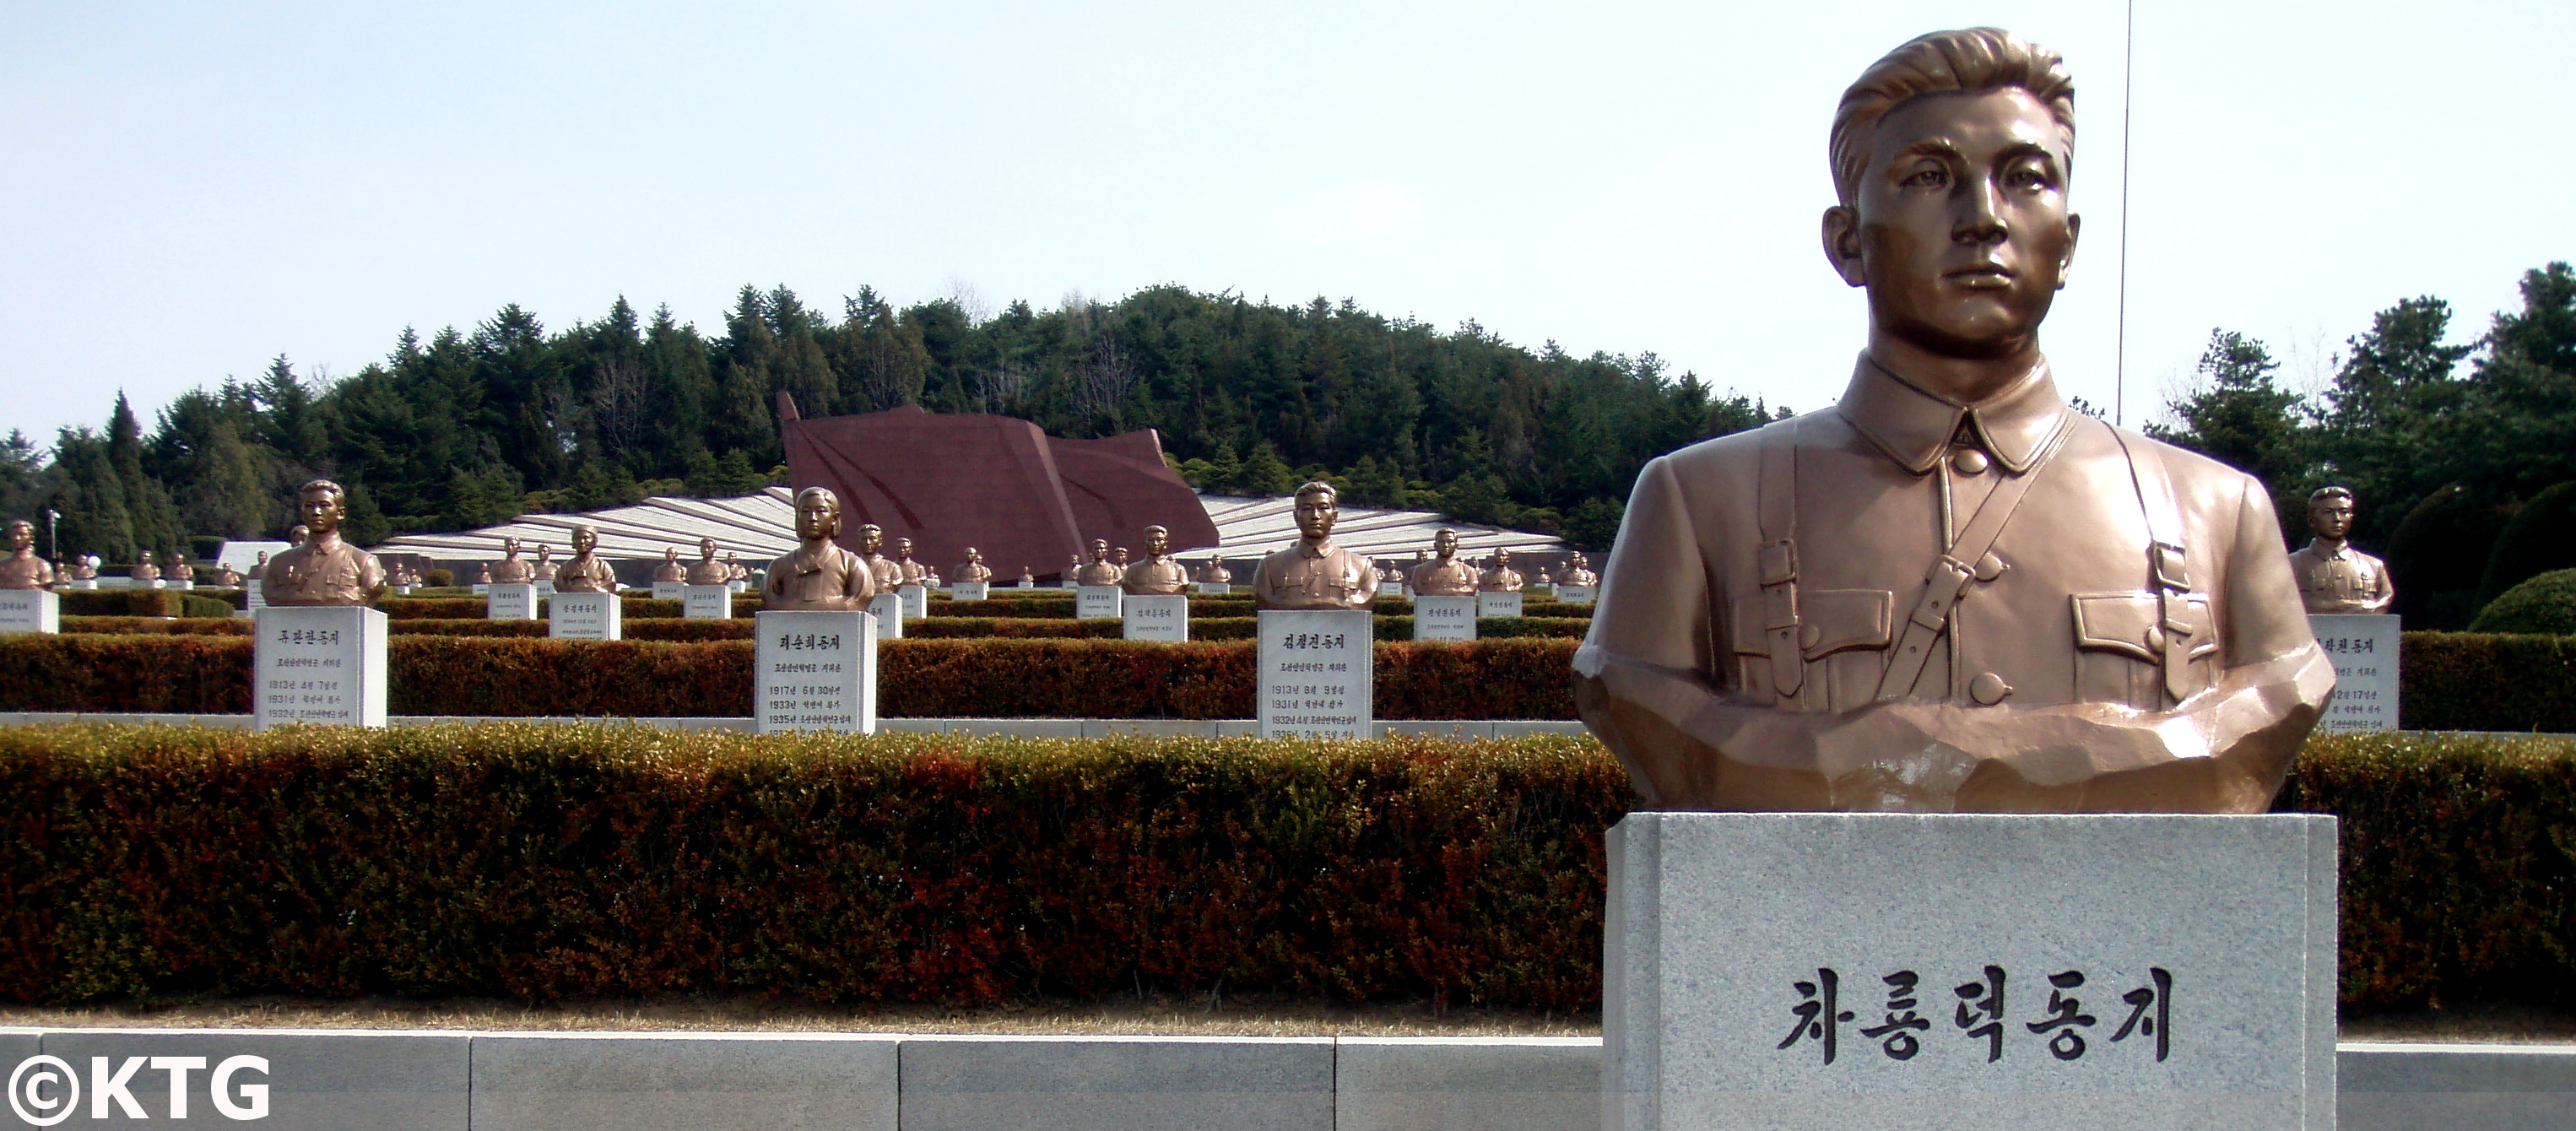 Revolutionary Martyr's Cemetery in the outskirts of Pyongyang, capital of North Korea